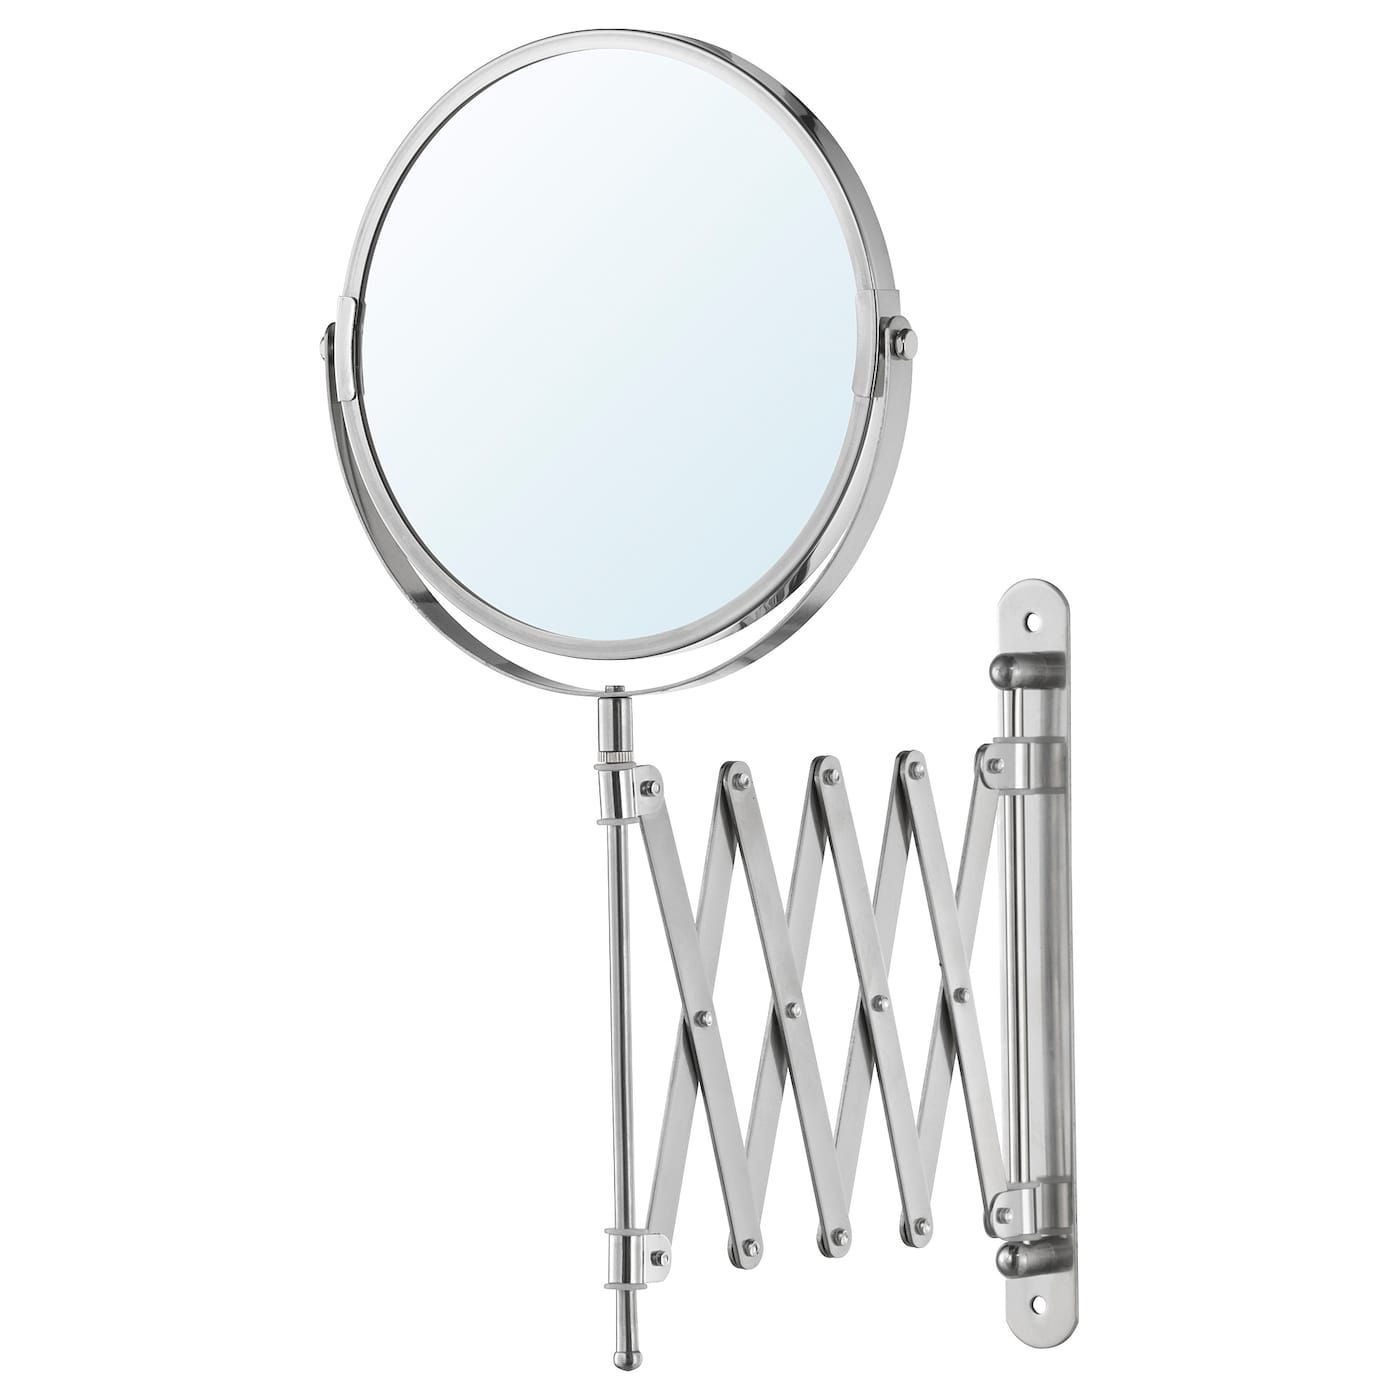 Frack Mirror Stainless Steel Magnifying Mirror Mirror Large